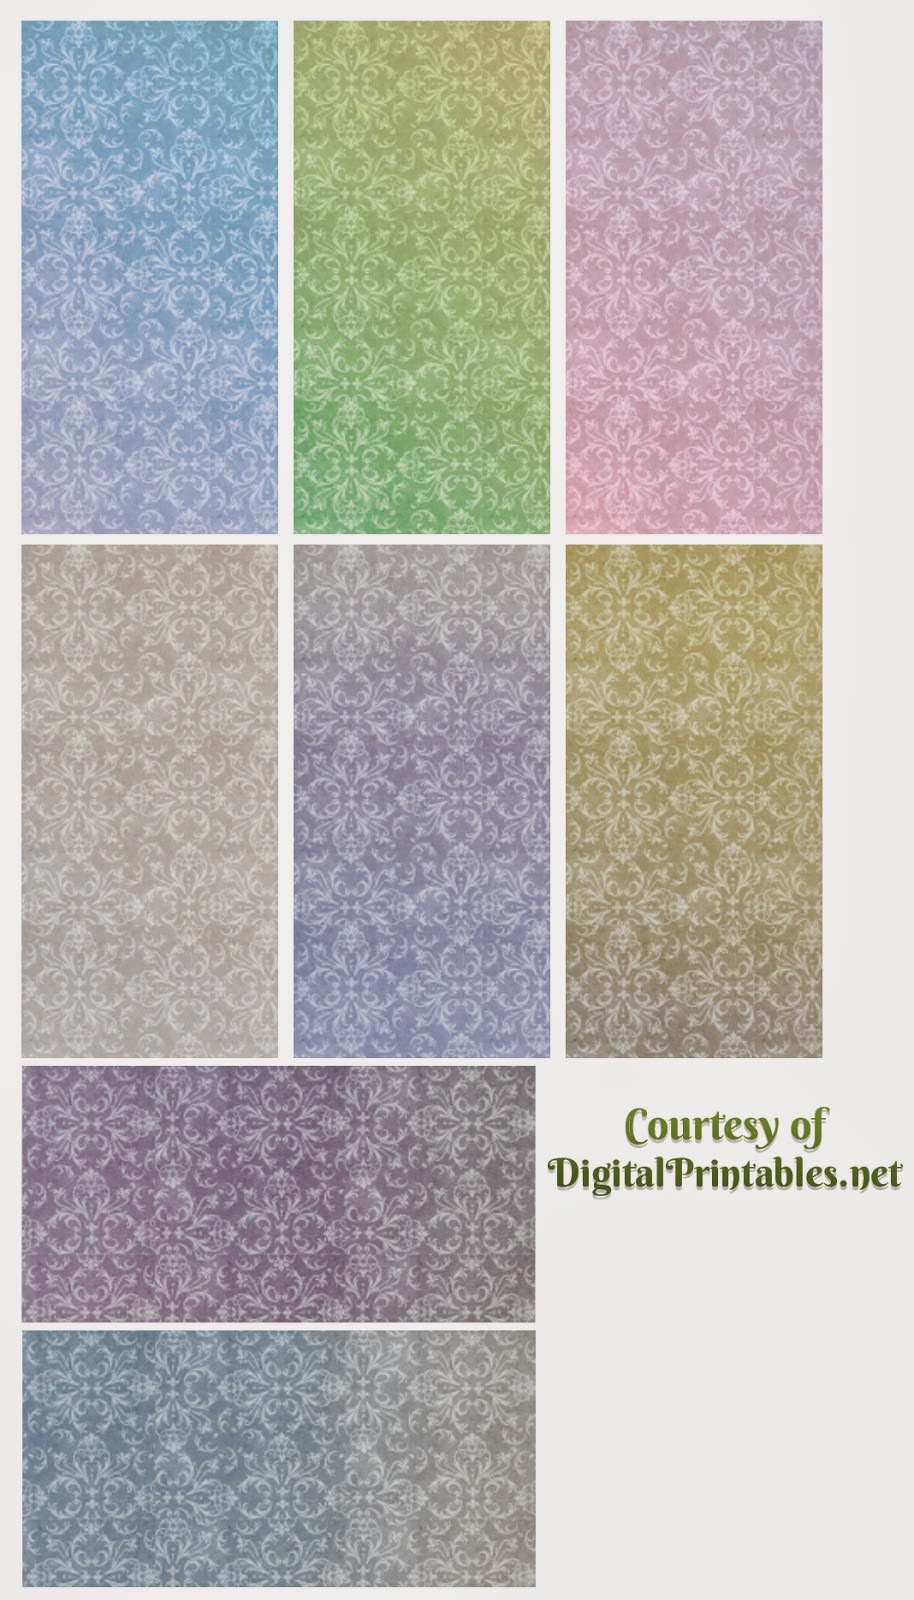 high-res domino tiles damask vintage